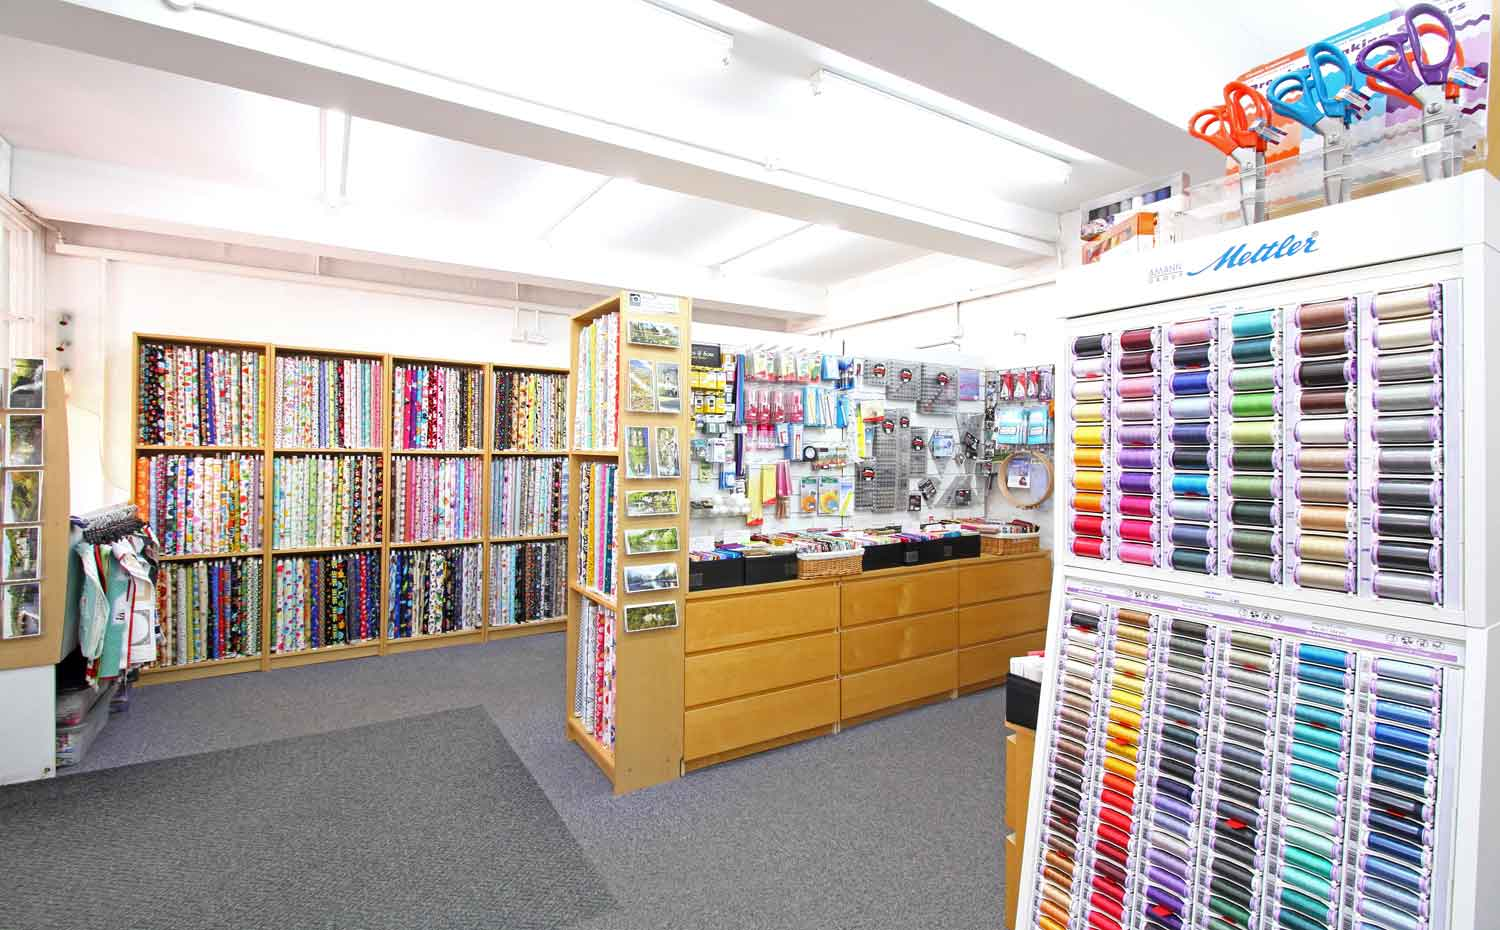 Interior view of the fabrics and sewing equipment at Quiltessential in Cromford Derbyshire